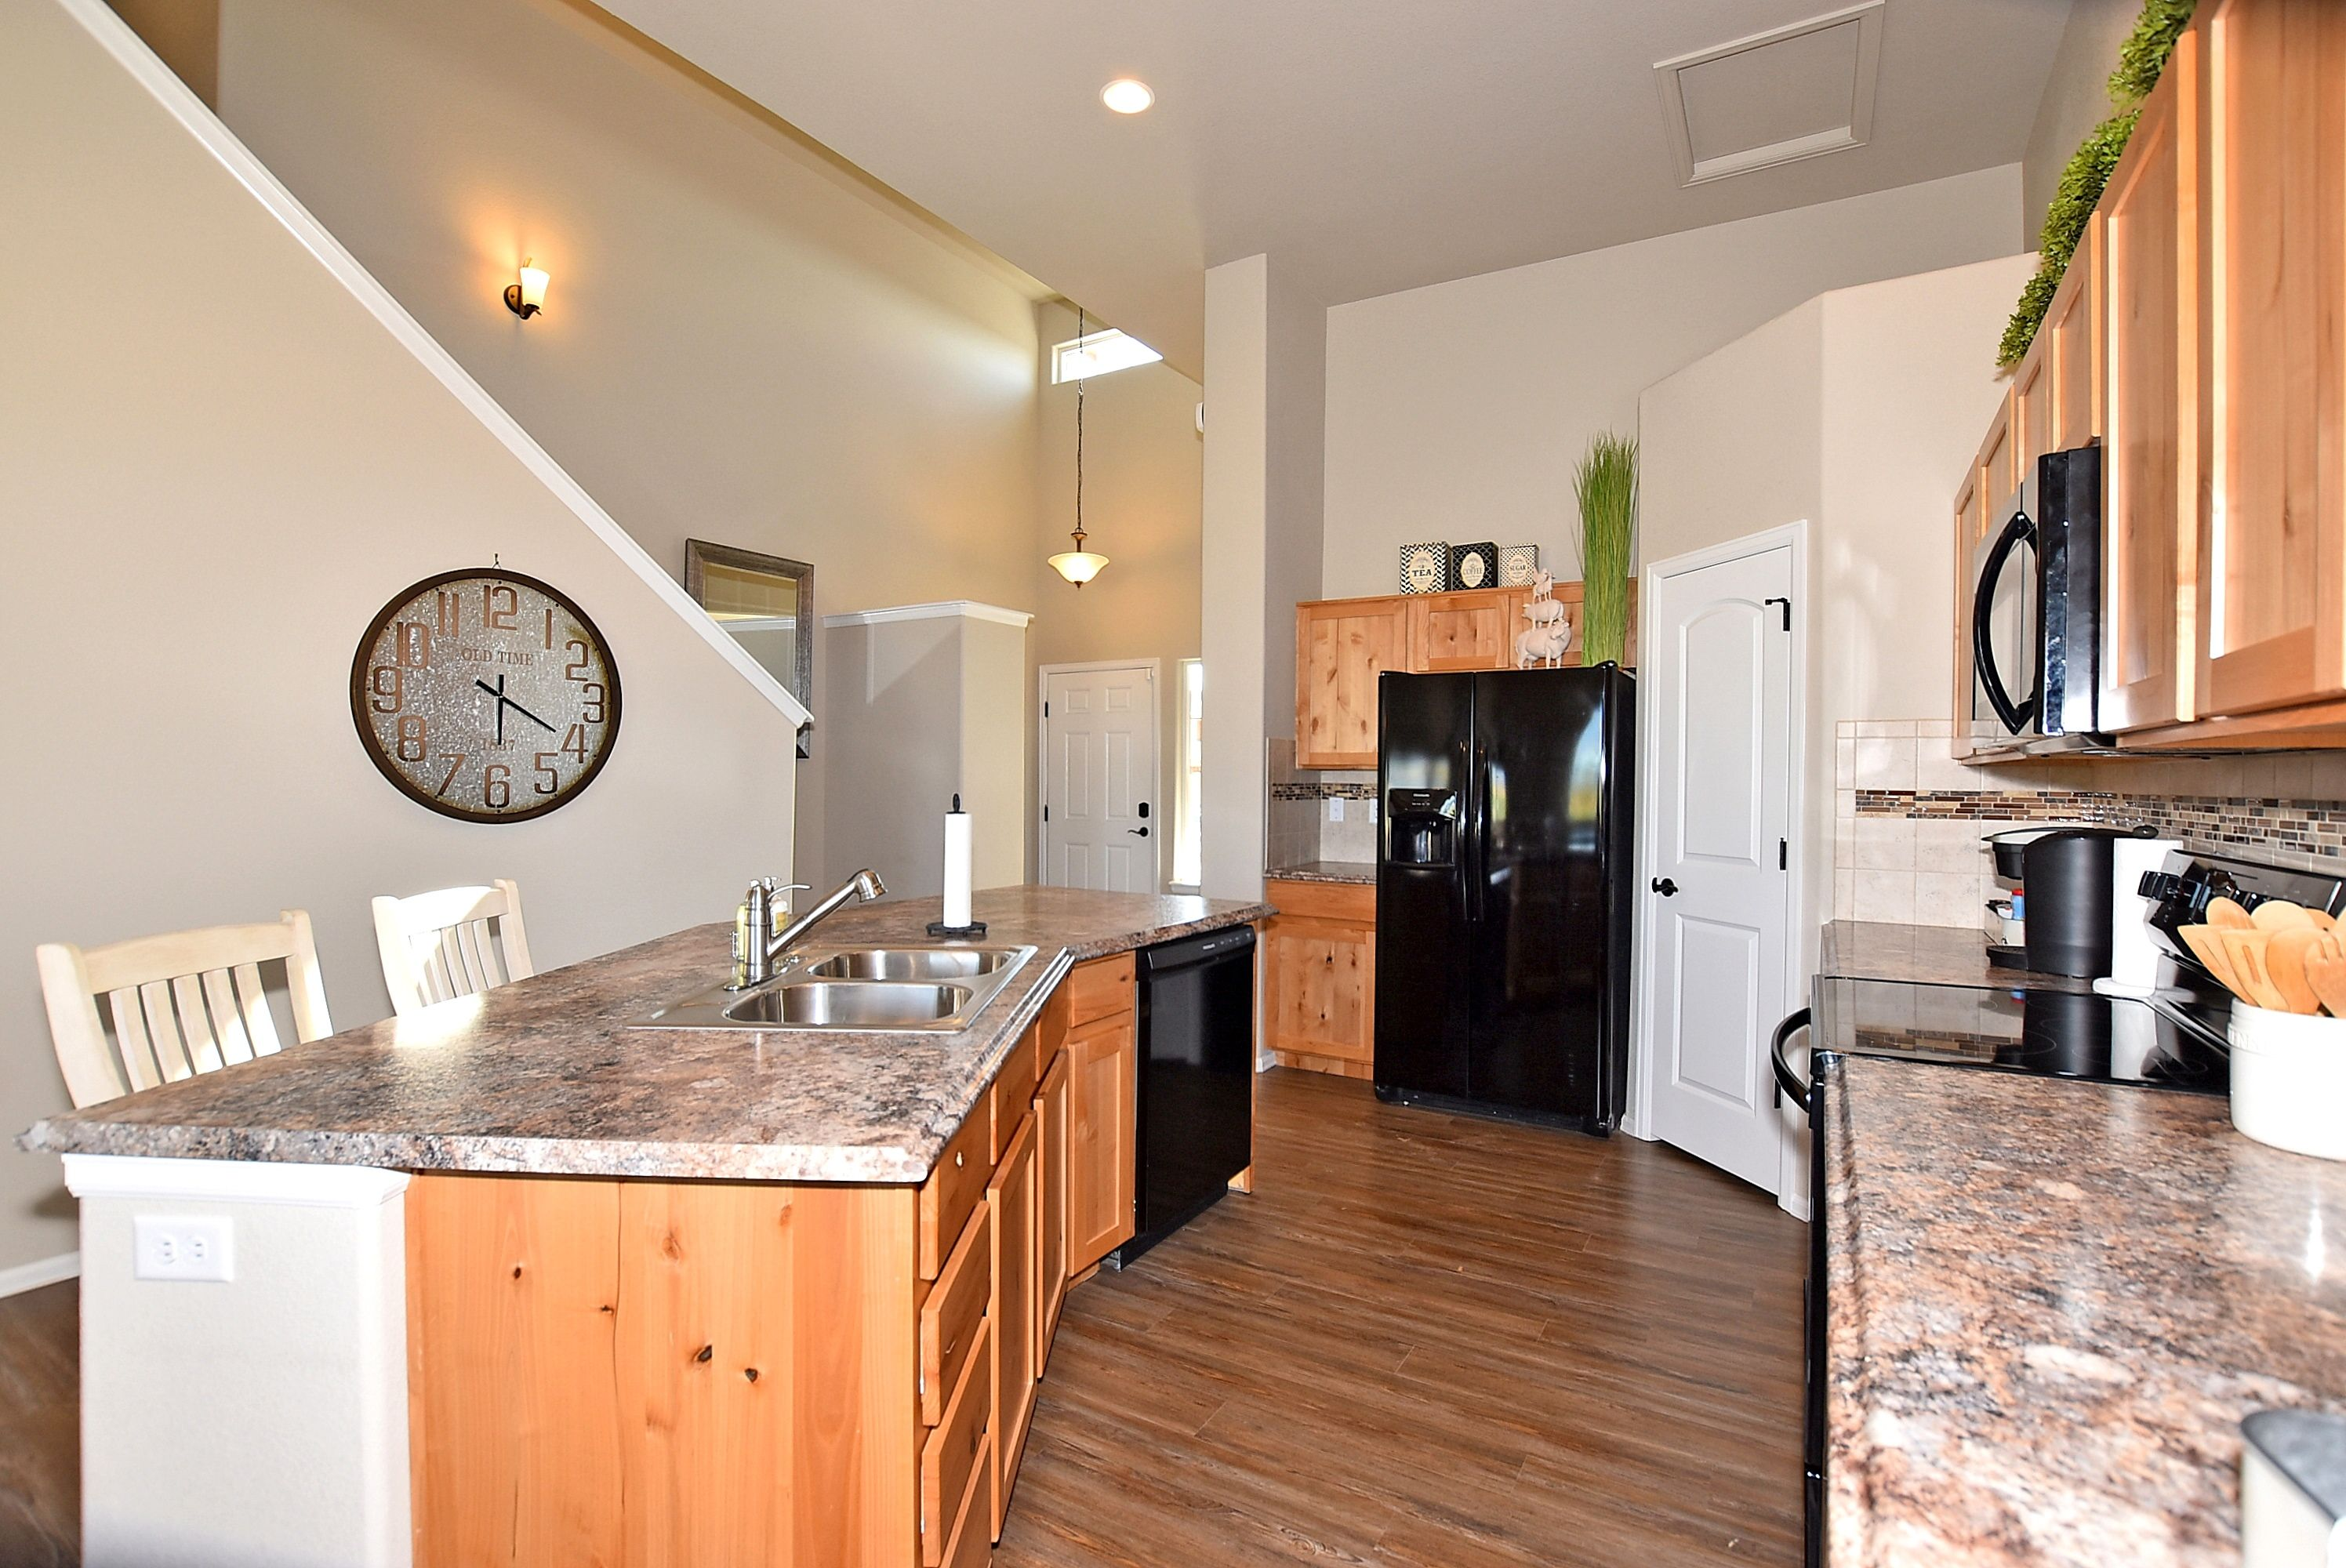 Bathroom featured in the Big Horn By Journey Homes in Greeley, CO